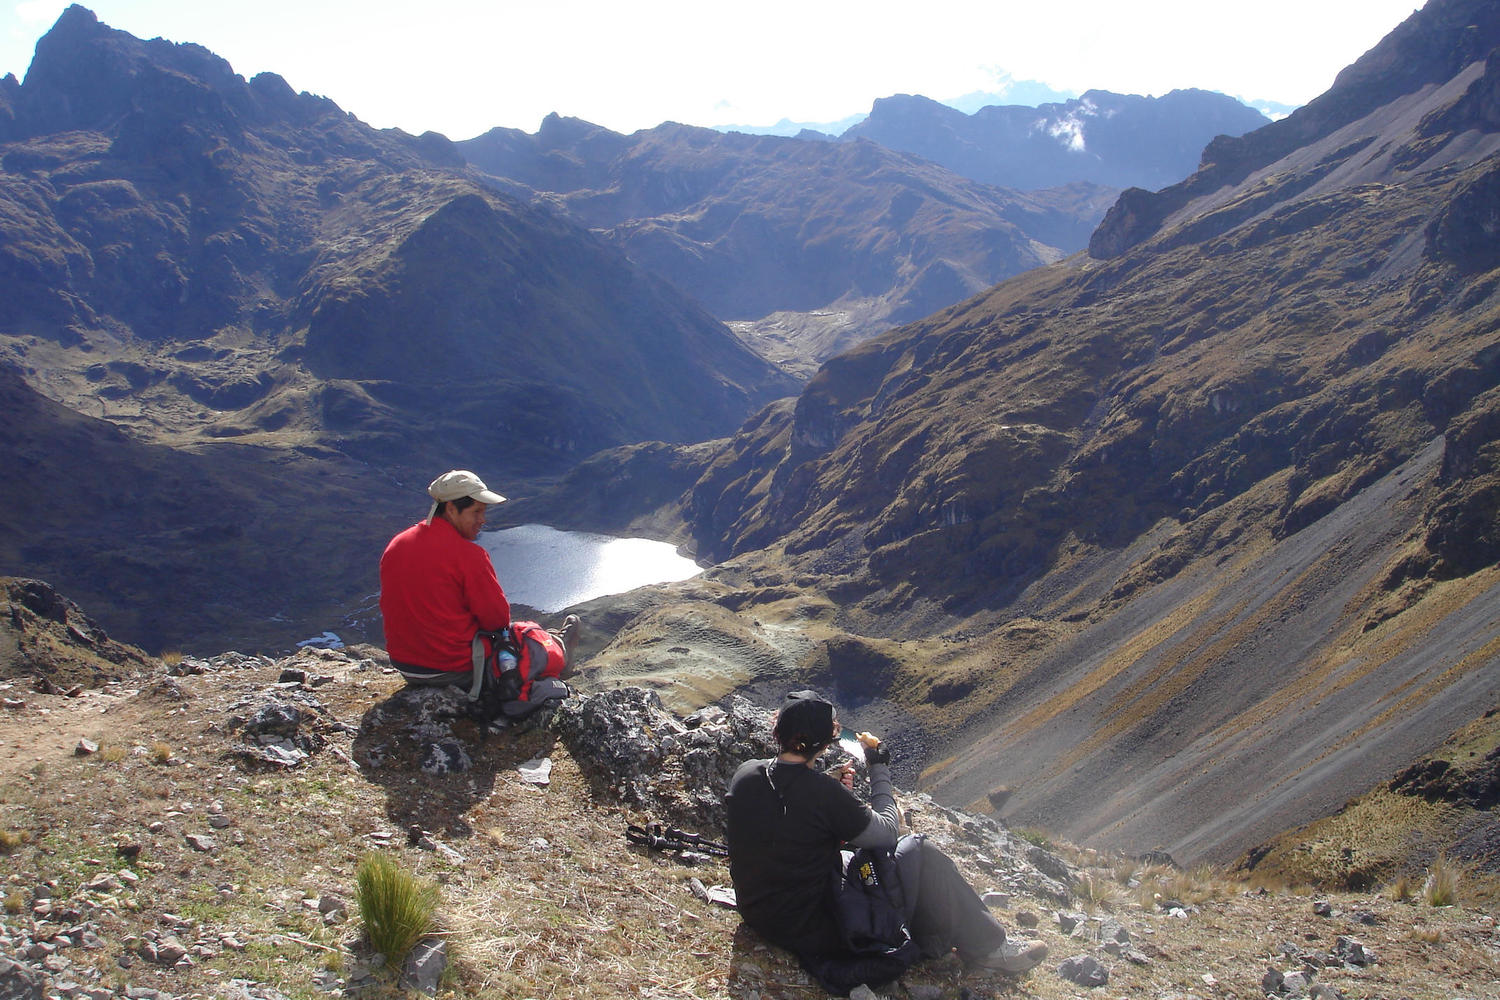 Lunch with a beautiful view on the Lares Trail